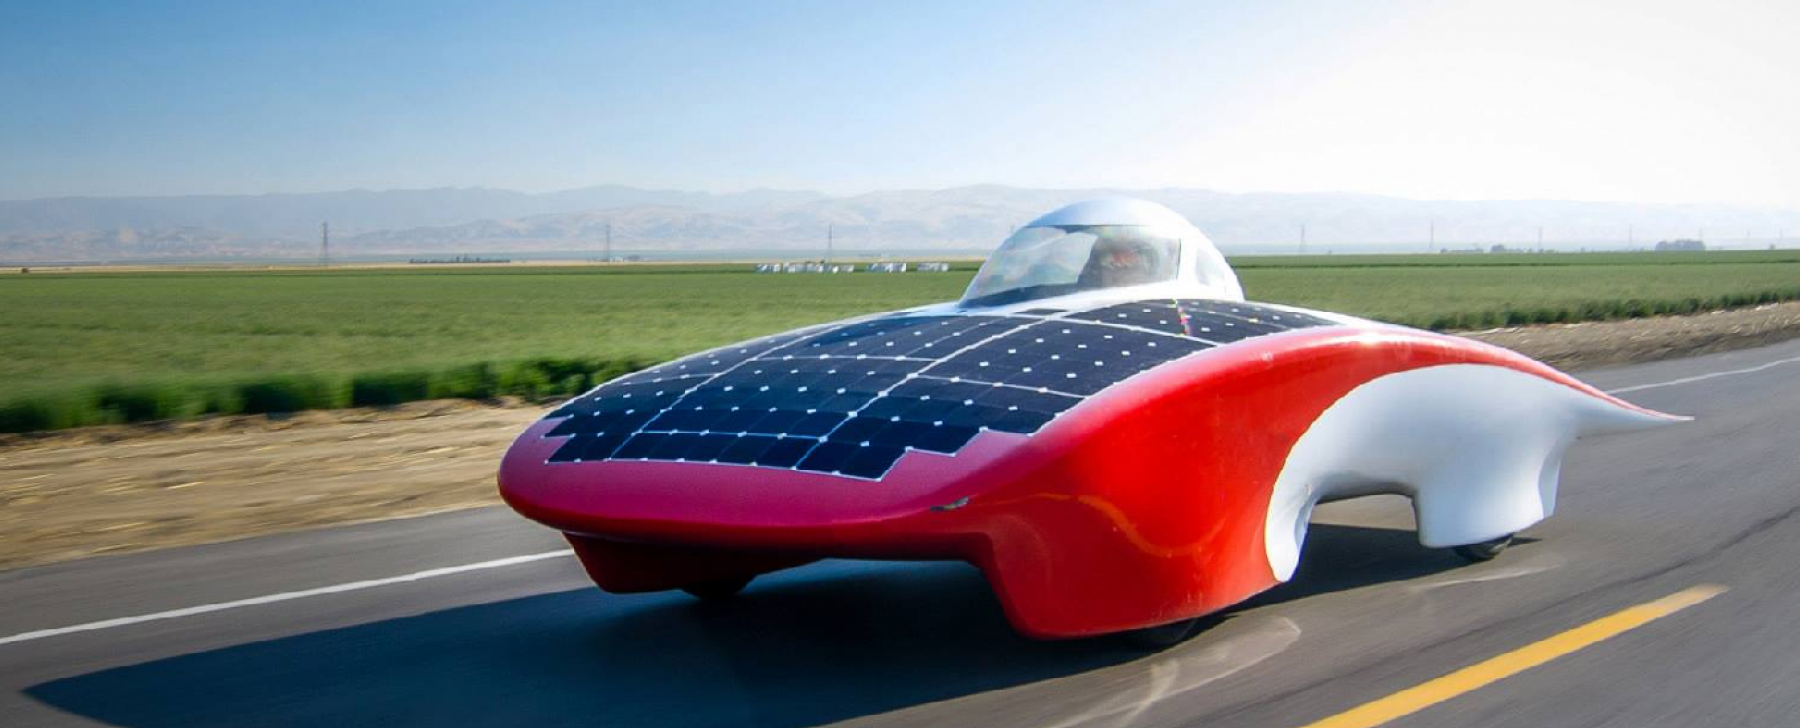 Coches solares